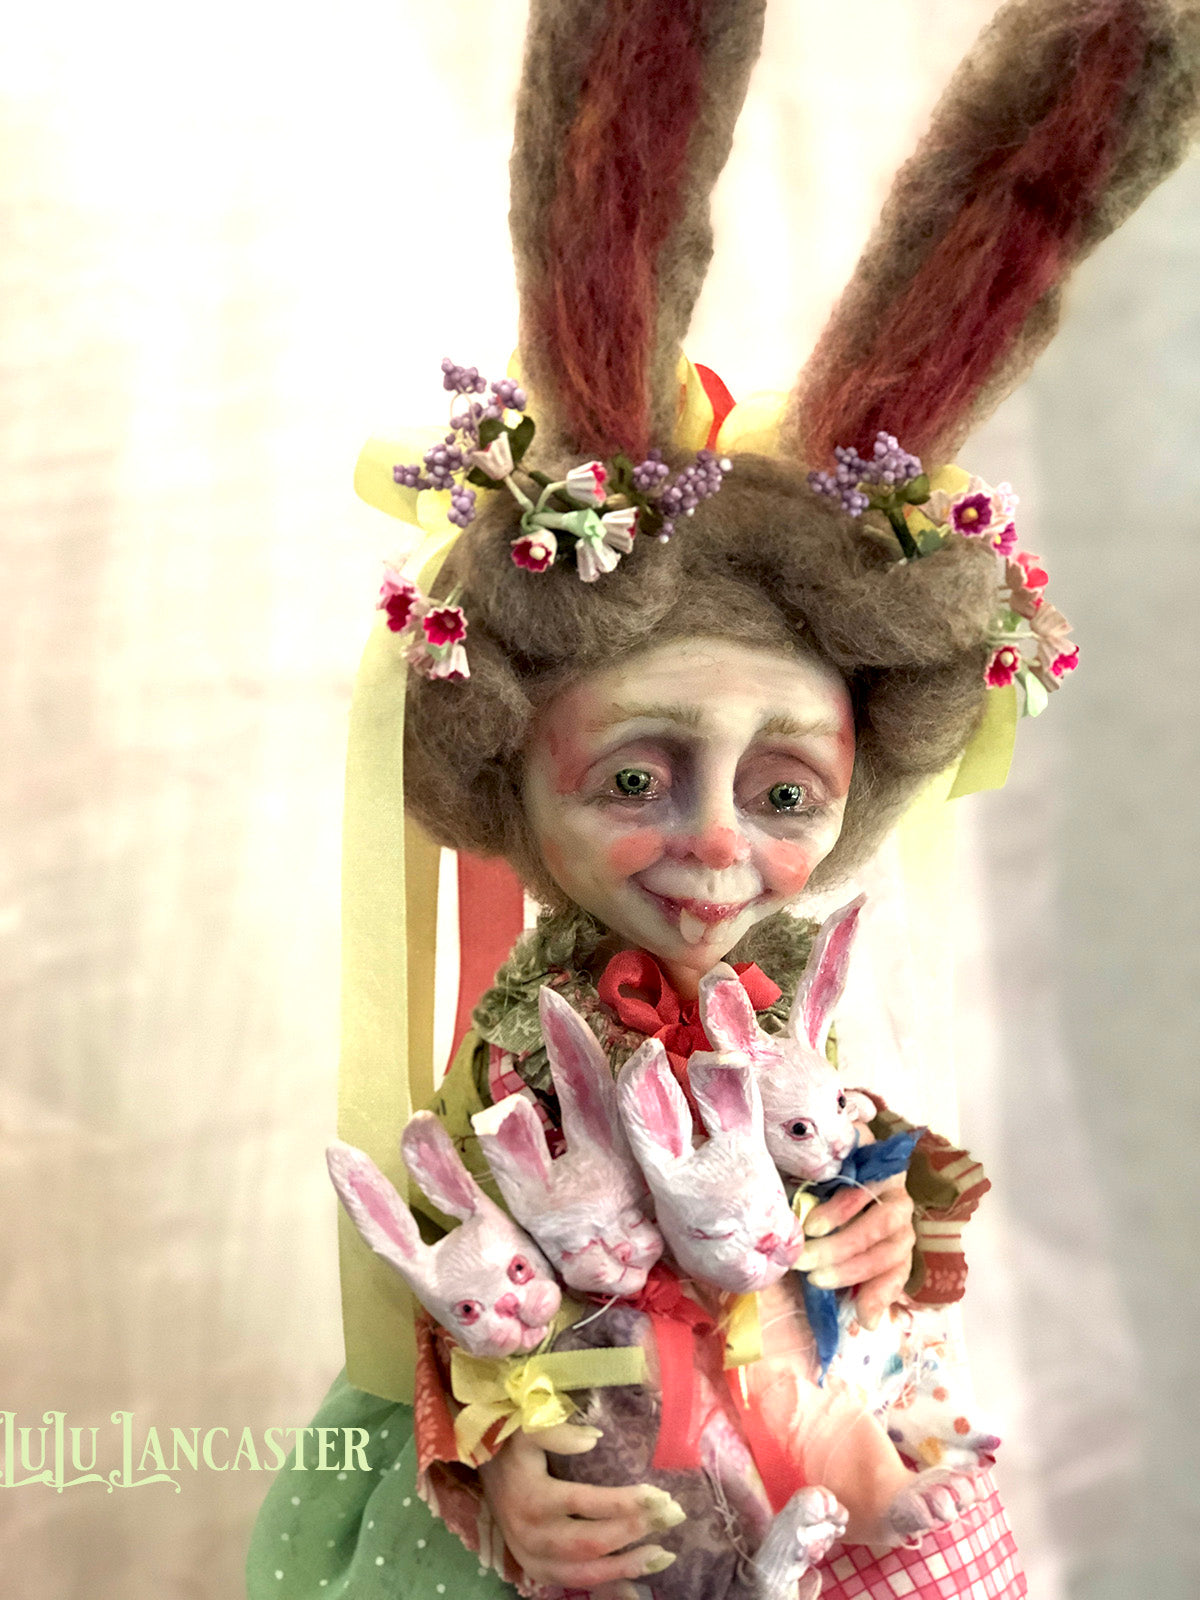 Great Grannie Hare Springtime Rabbit OOAK Art Doll LuLu Lancaster